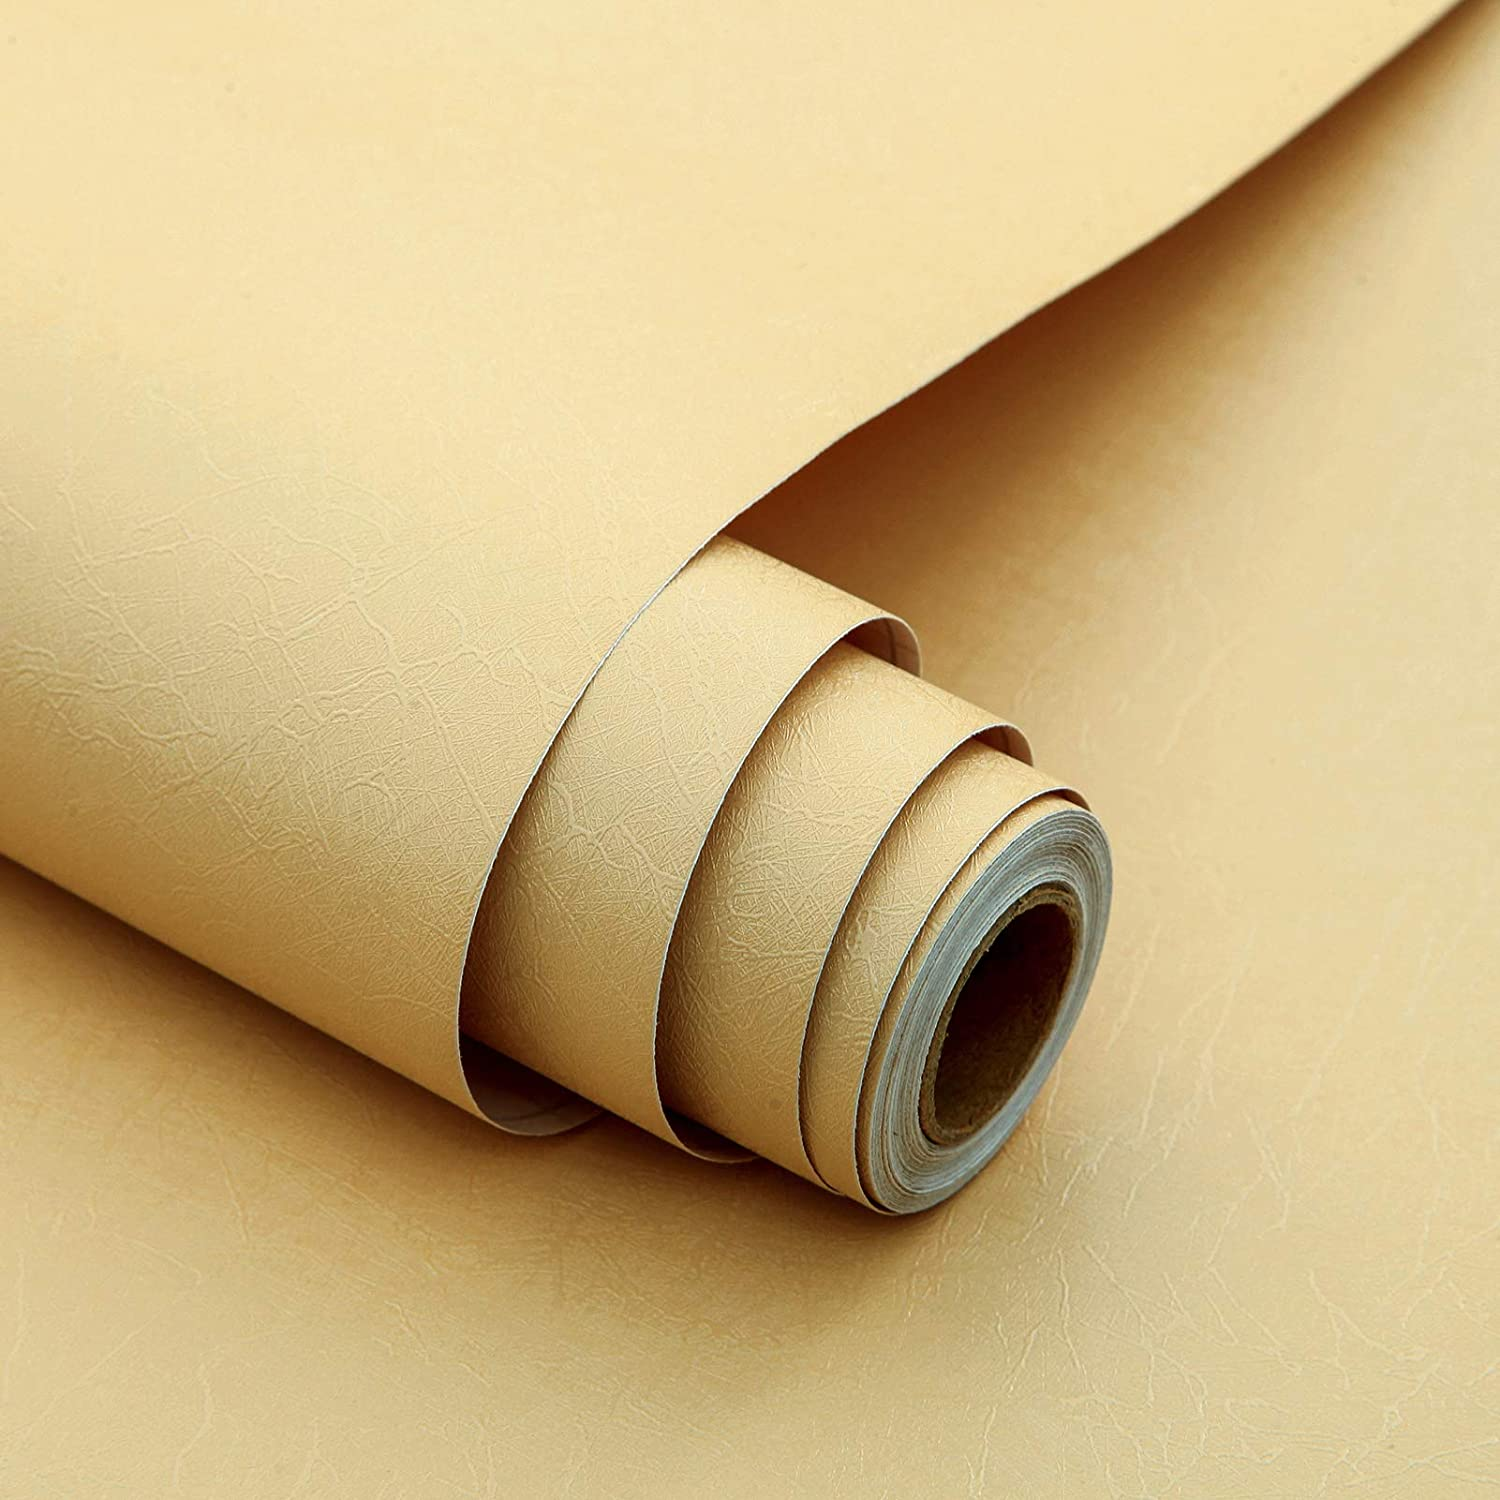 Beige Silk Peel and Stick Wallpaper Embossed Removable Self Adhesive Wallpaper Stick and Peel Wallpaper Beige Contact Paper Vinyl Film Wall Covering Home Decoration Shelf Drawer Liner 17.7